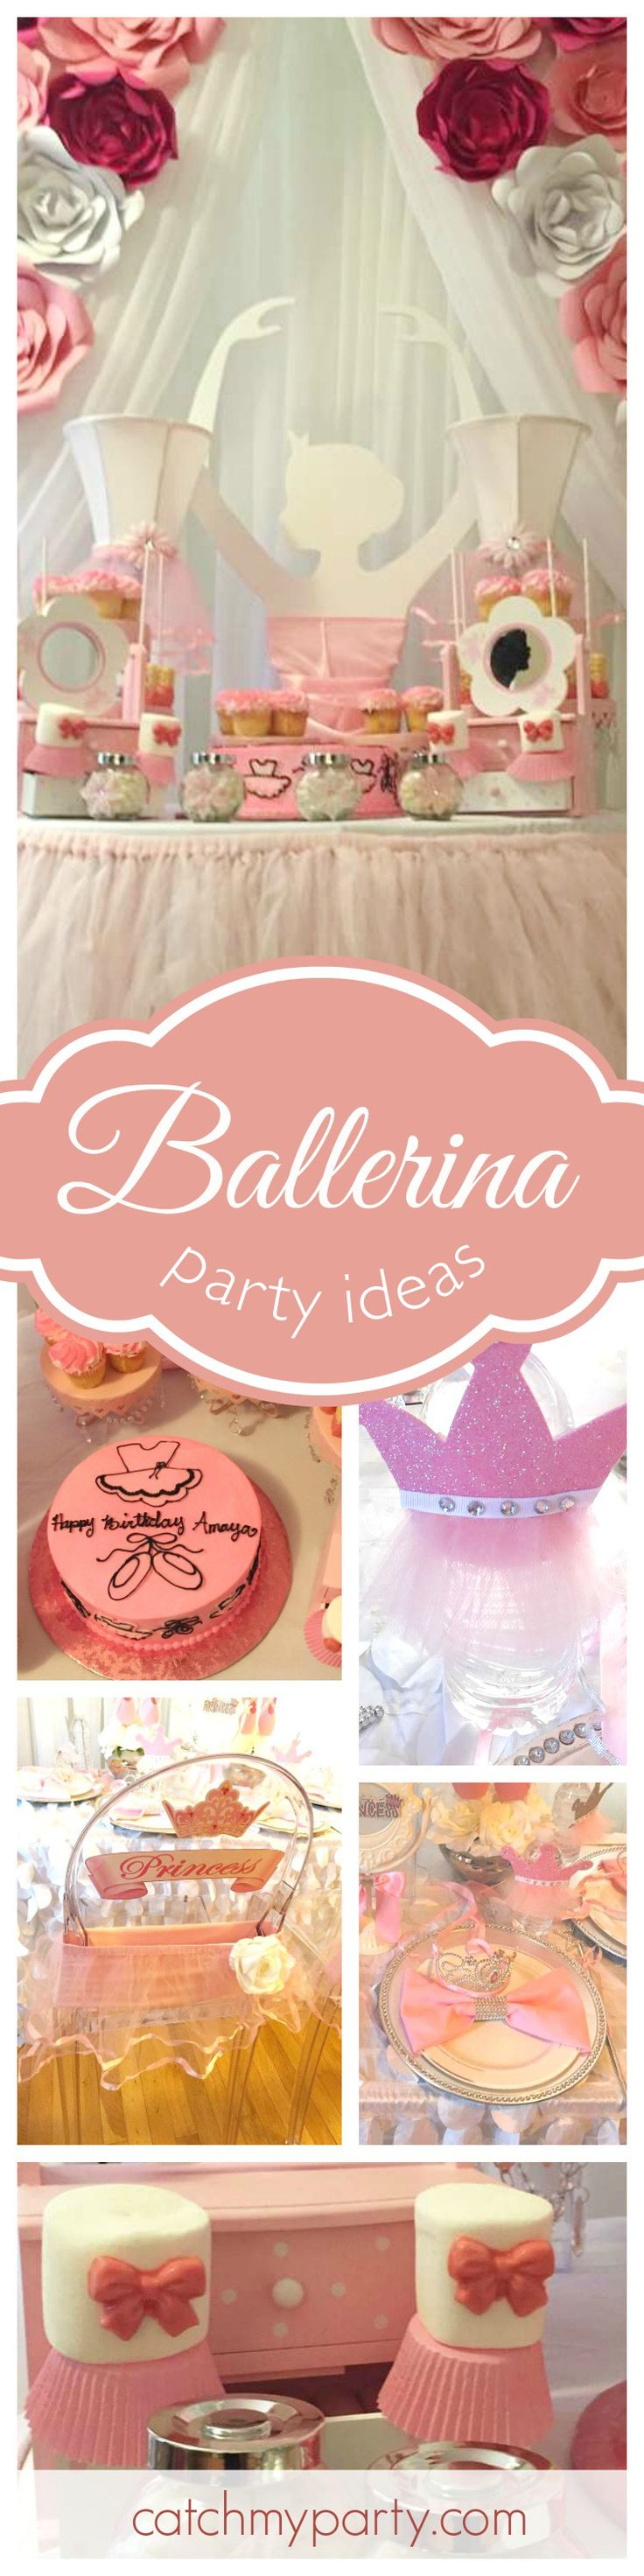 If you've a little ballerina at home then you won't want to miss this fabulous birthday party! The ballerina dessert table is amazing! See more party ideas and share yours at CatchMyParty.com